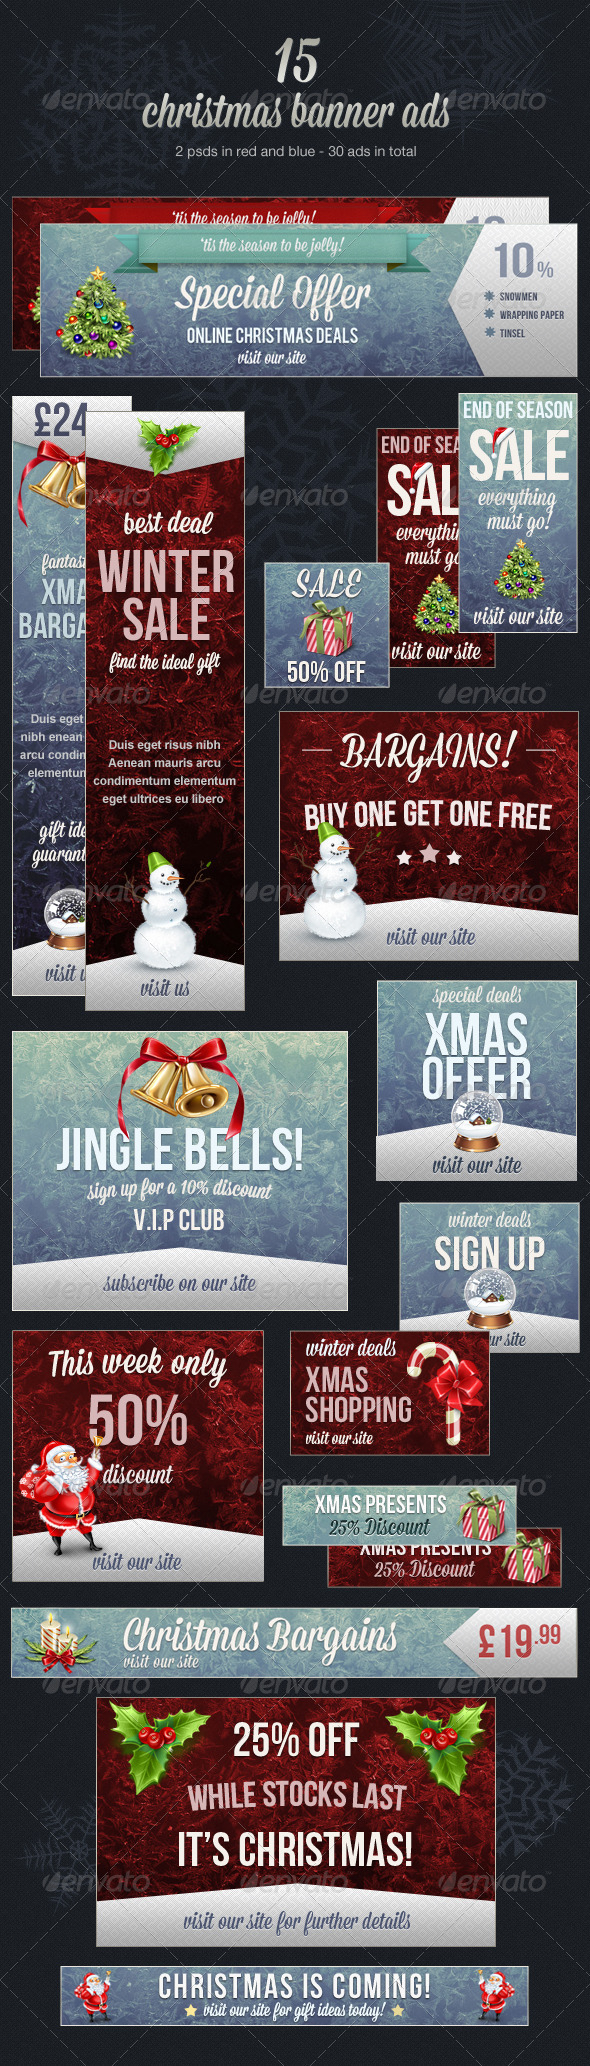 Christmas Web Banner Ads - Banners & Ads Web Elements